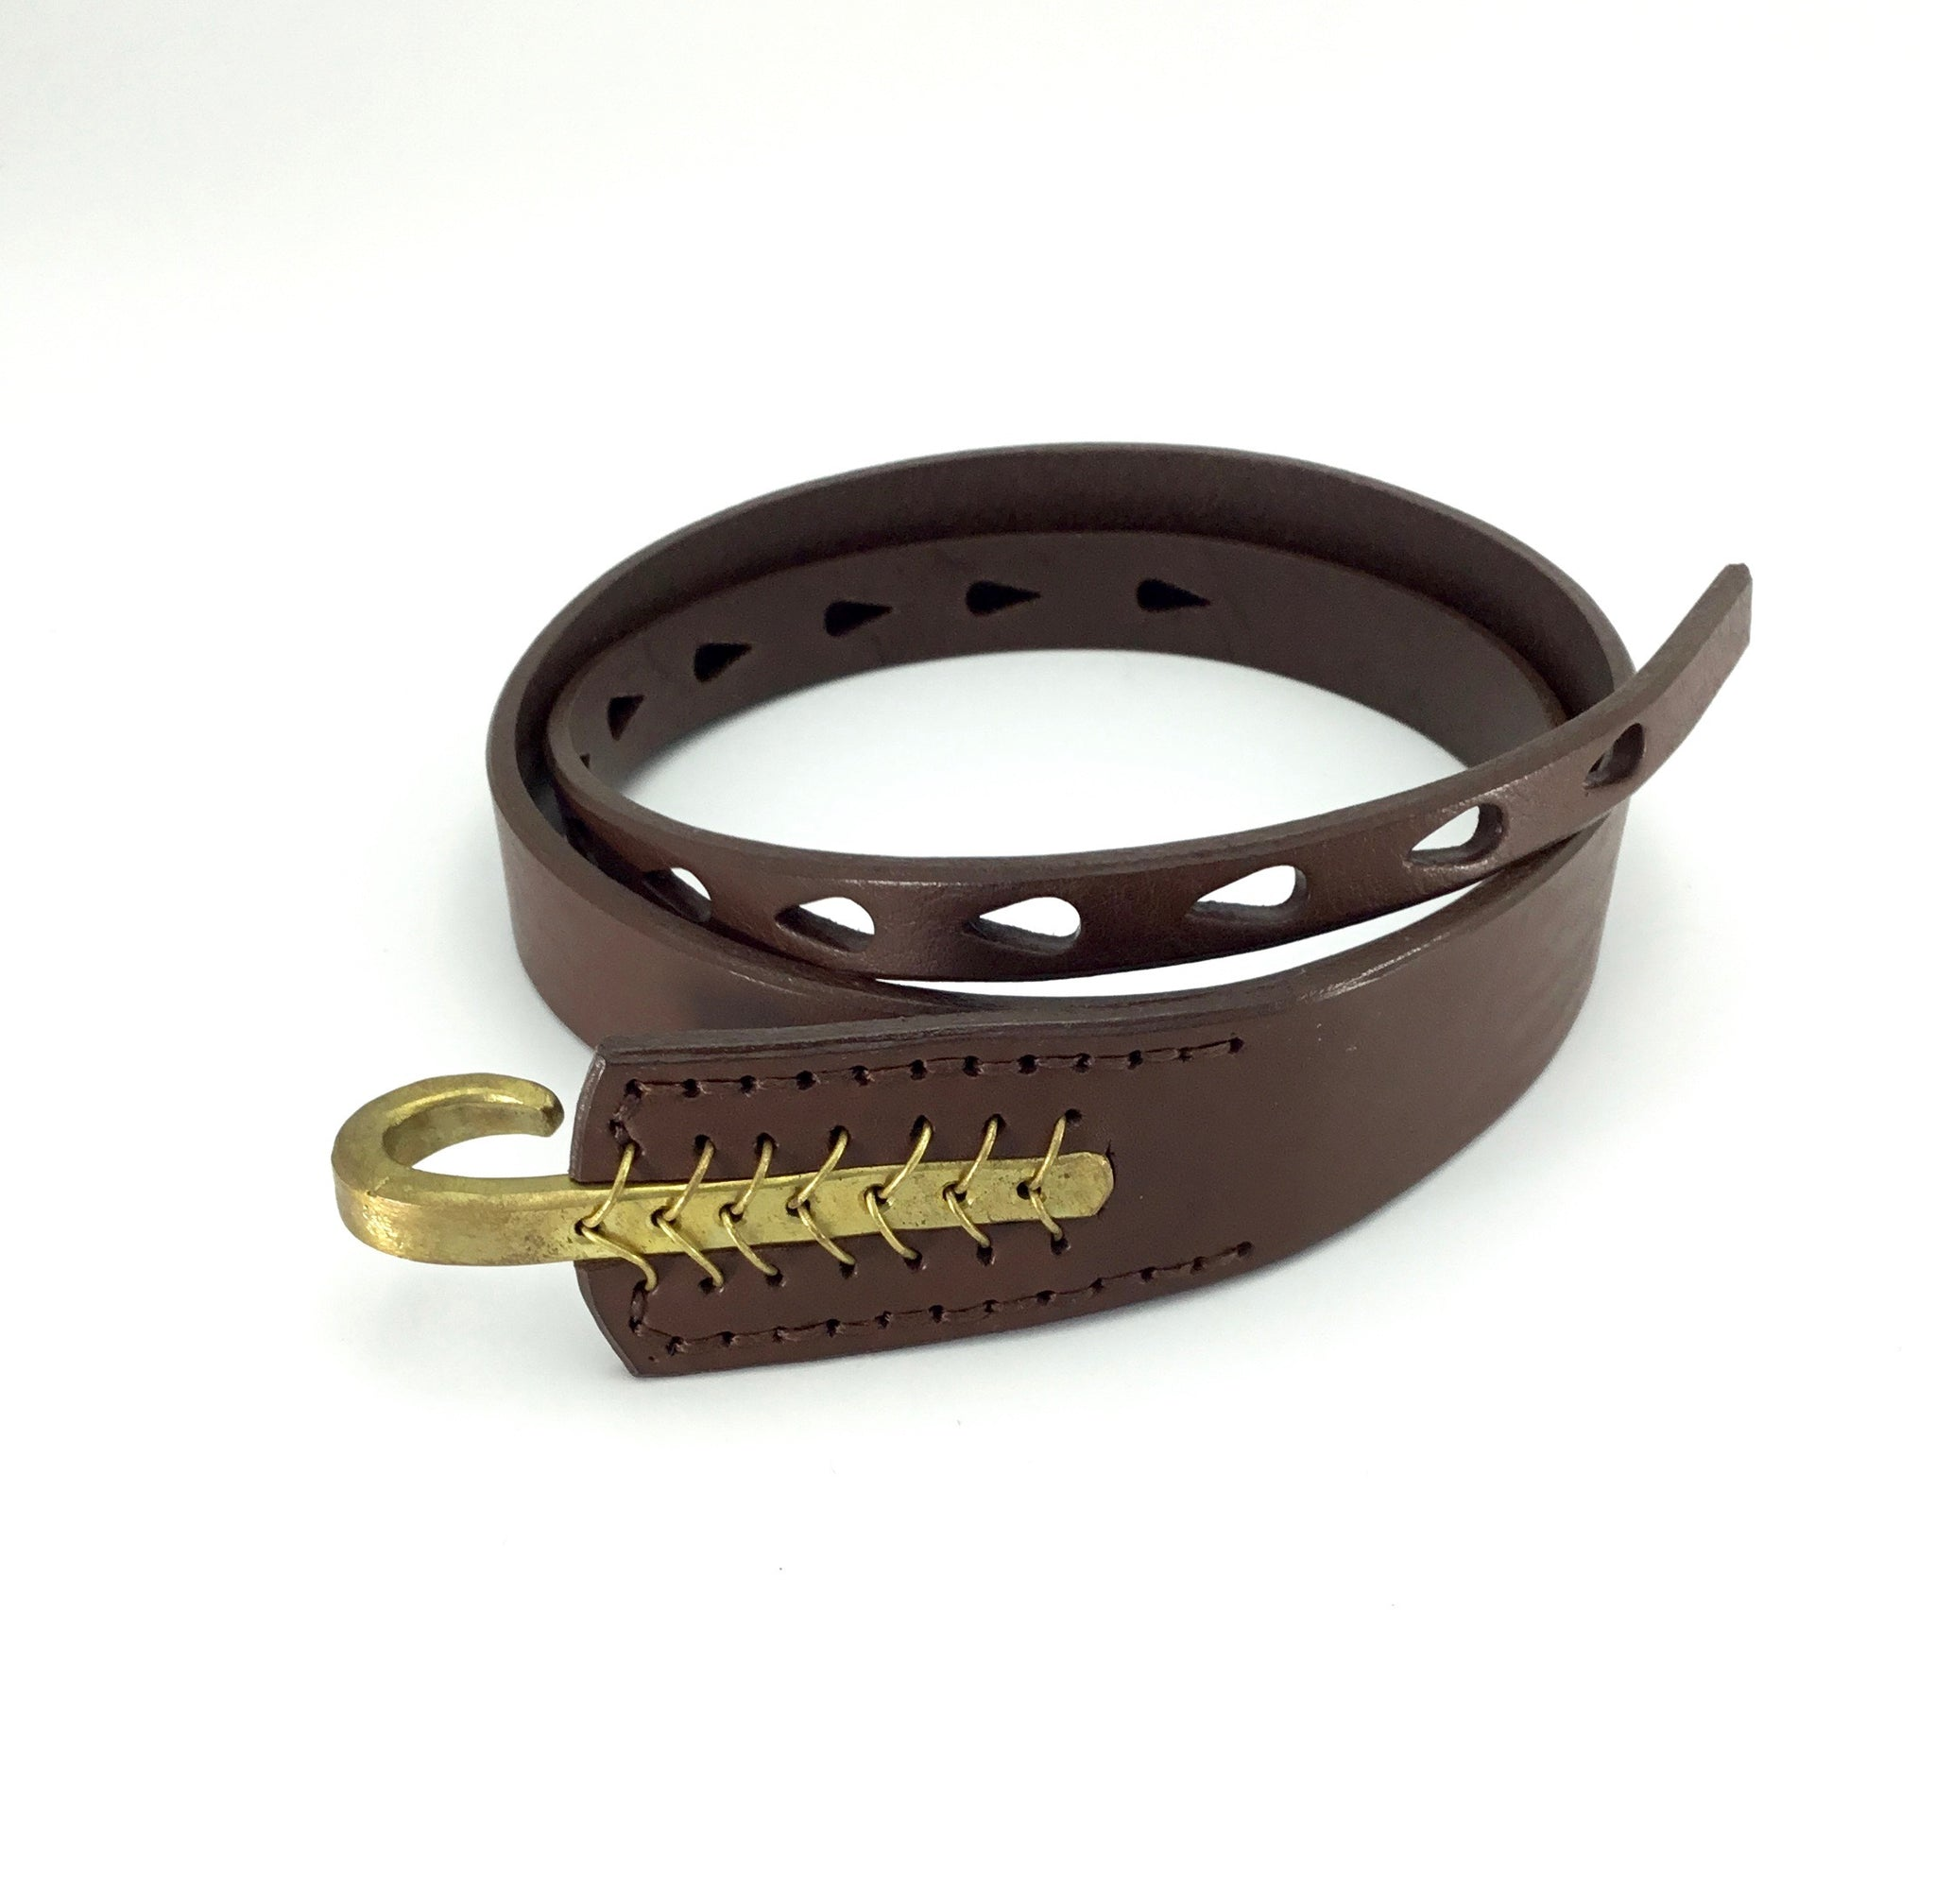 Johnny Farah Multihole Hook Belt